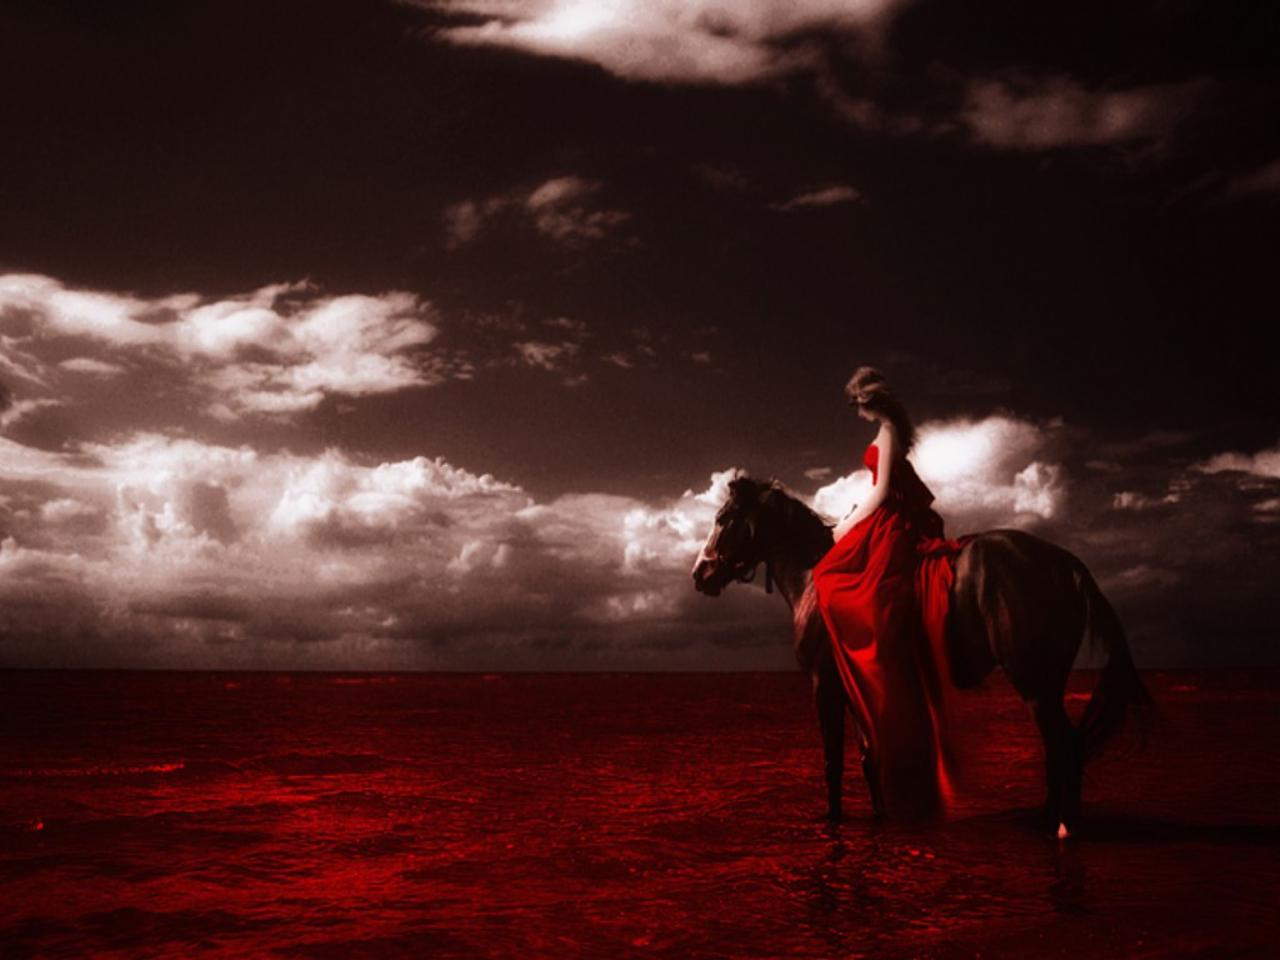 Red Wallpaper/Background 1280 x 960 - id: 146182 - Wallpaper Abyss